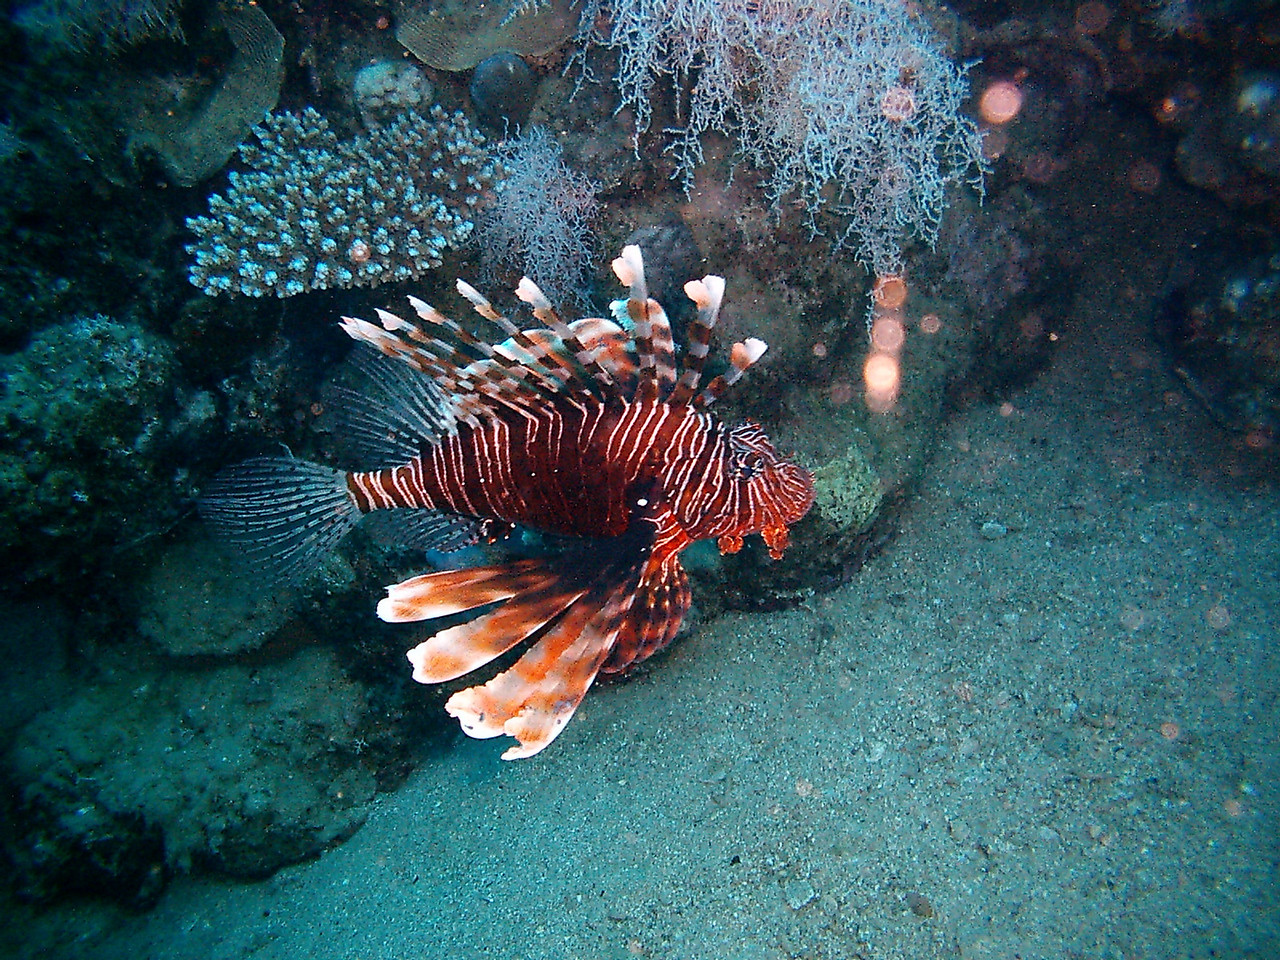 y) Another beautiful specimen of a lionfish.